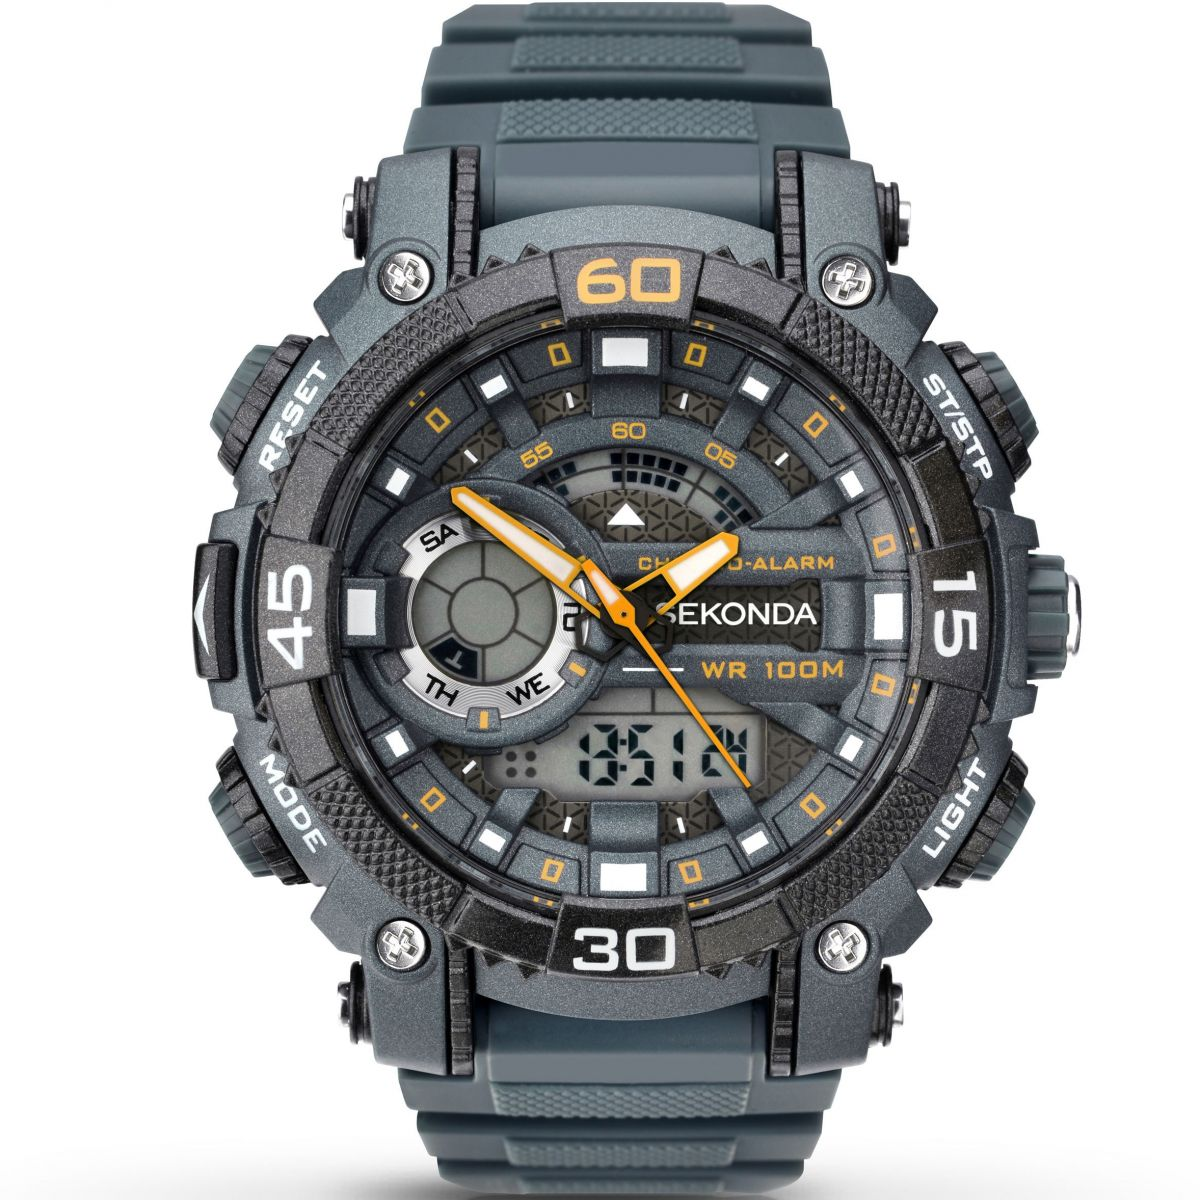 4d2bf9f40501 Sekonda Mens Dark Grey Strap Digital Watch 1036 Gents Sekonda Alarm Chronograph  Watch 1349 Watchshop Sekonda Nightfall Mens Chronograph Watch 1051 Sekonda  ...